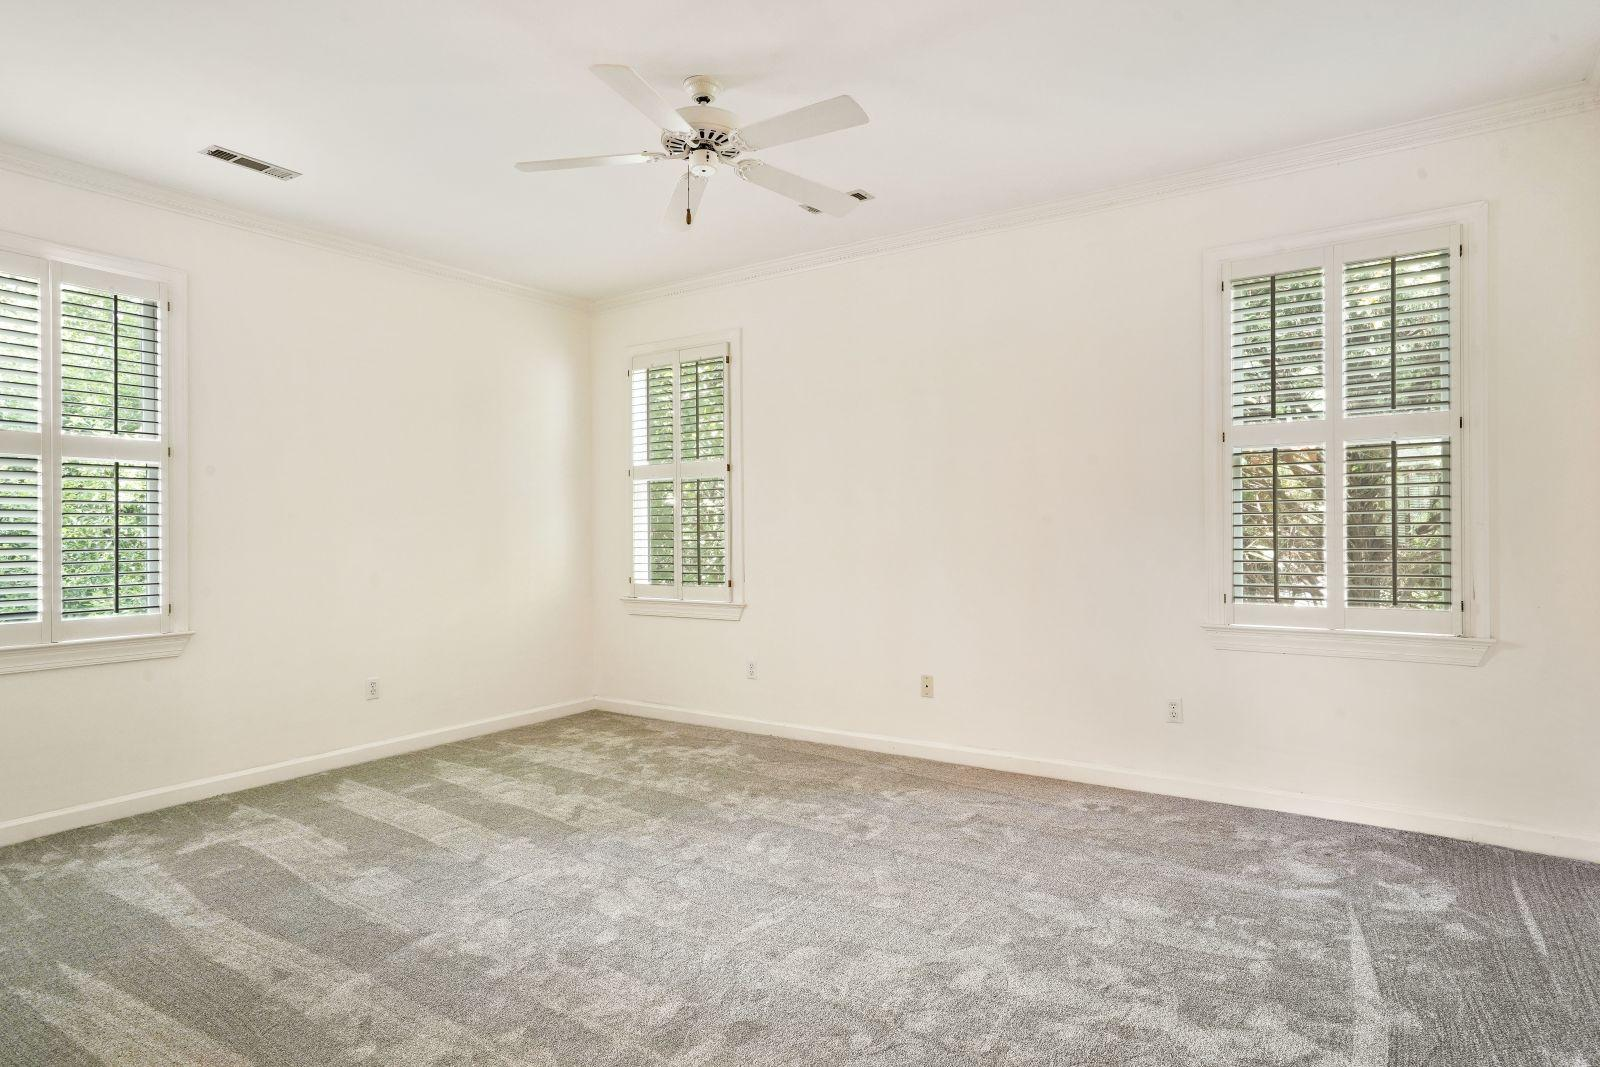 Simmons Pointe Homes For Sale - 1551 Ben Sawyer, Mount Pleasant, SC - 14